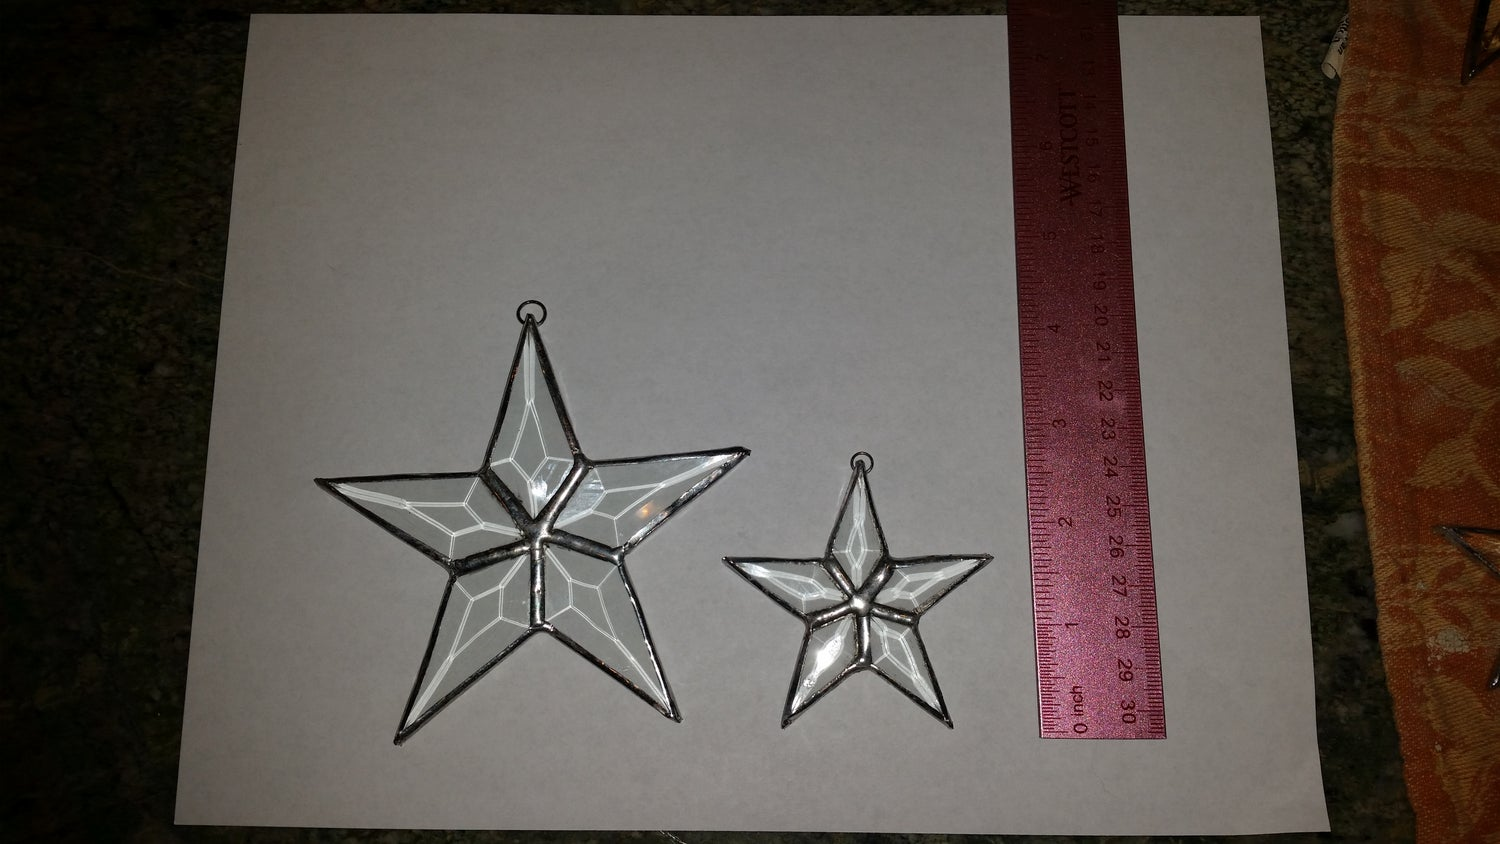 Image of Small Beveled Star-stained glass